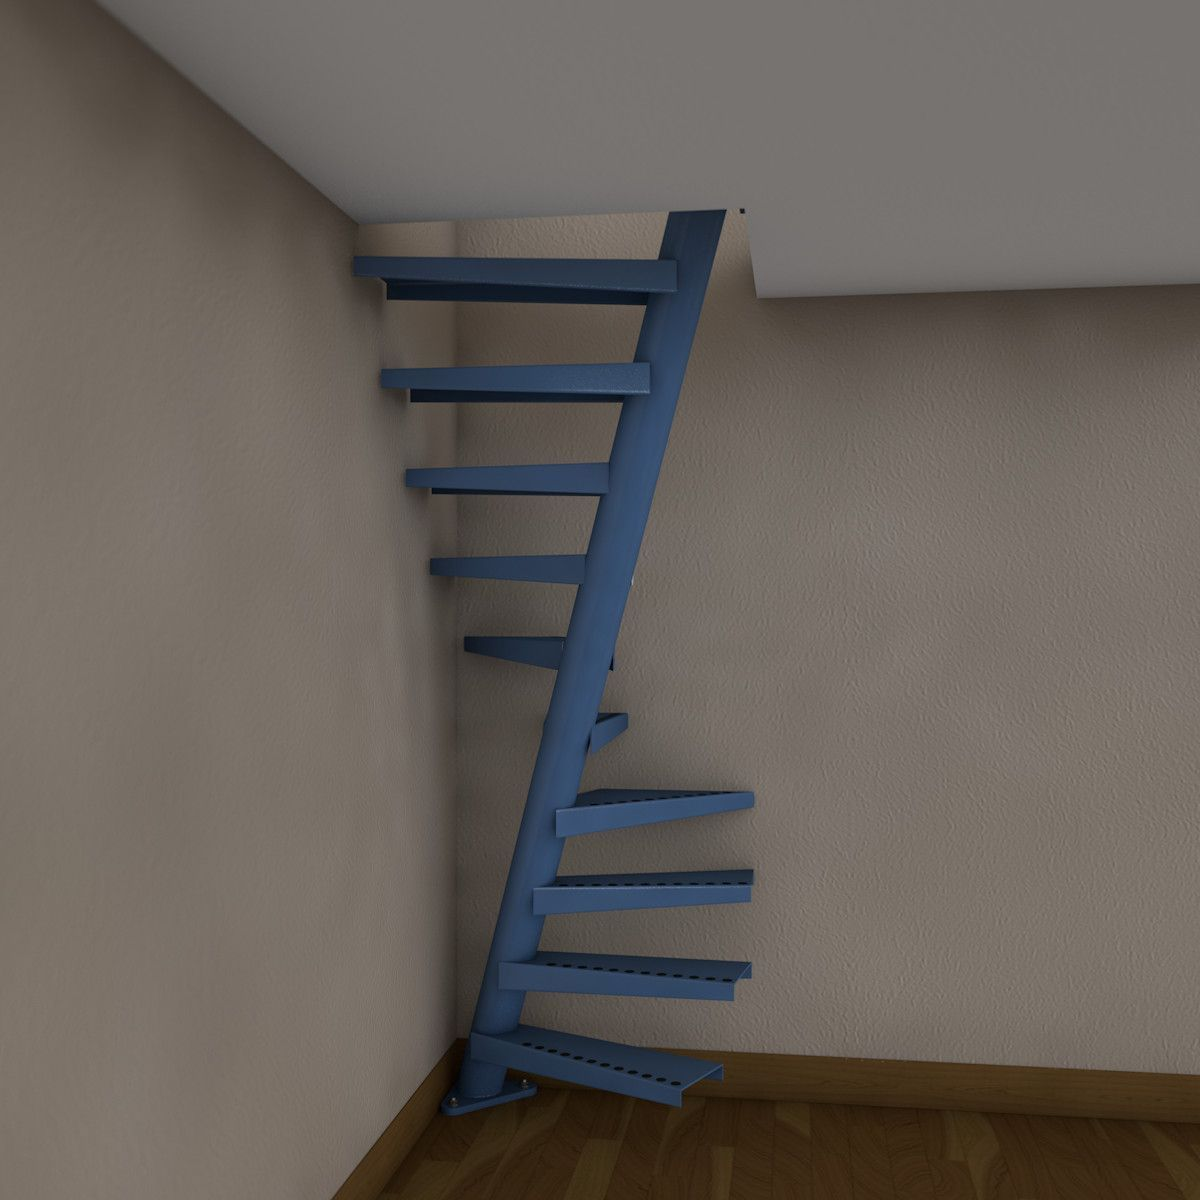 34+ Ideas to replace spiral staircase ideas